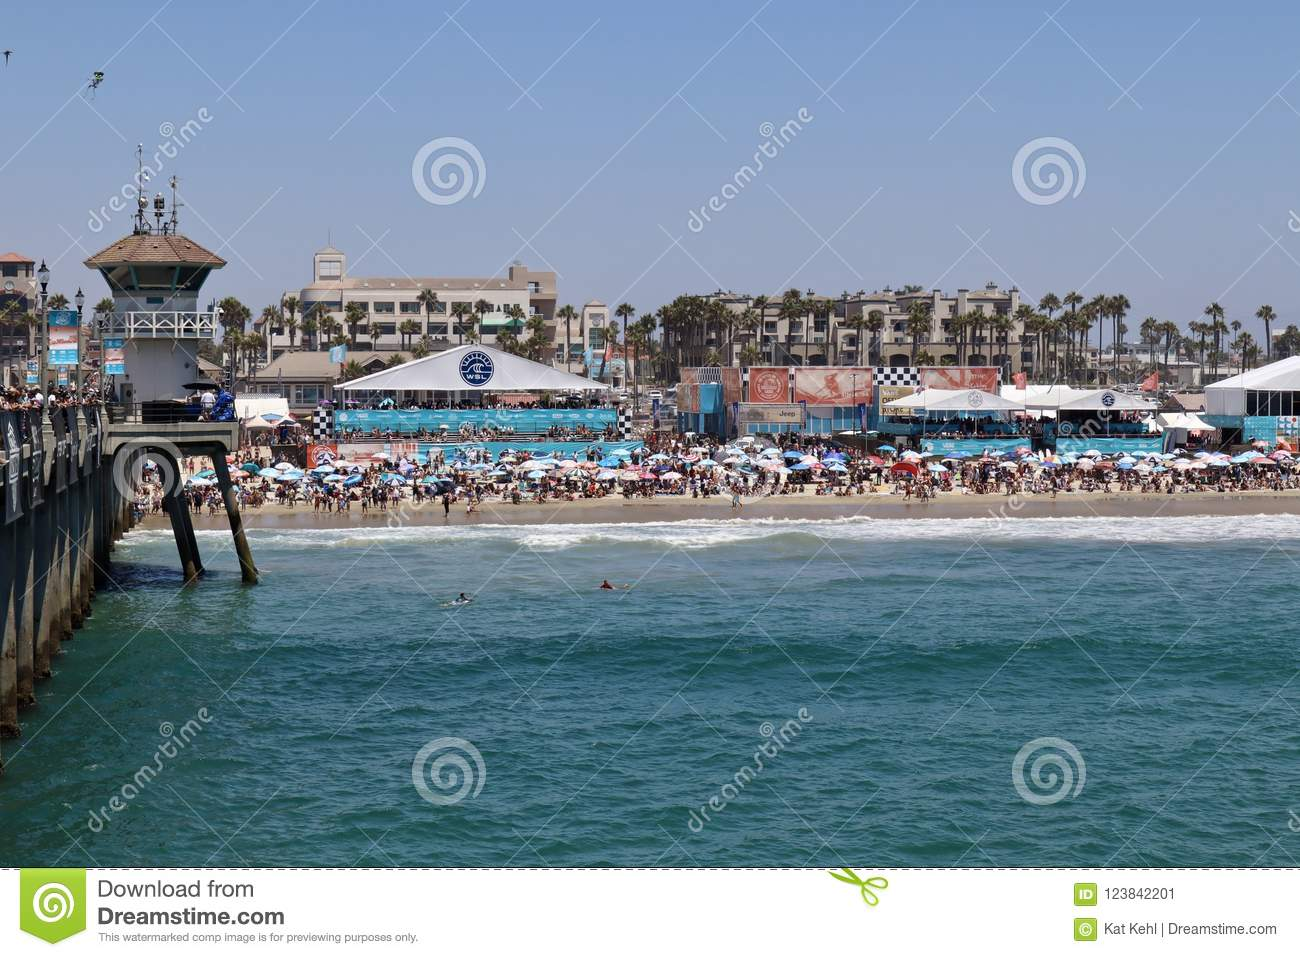 57cc60a212 Beach view of the Vans US Open of Surfing 2018 July and August in Huntington  Beach